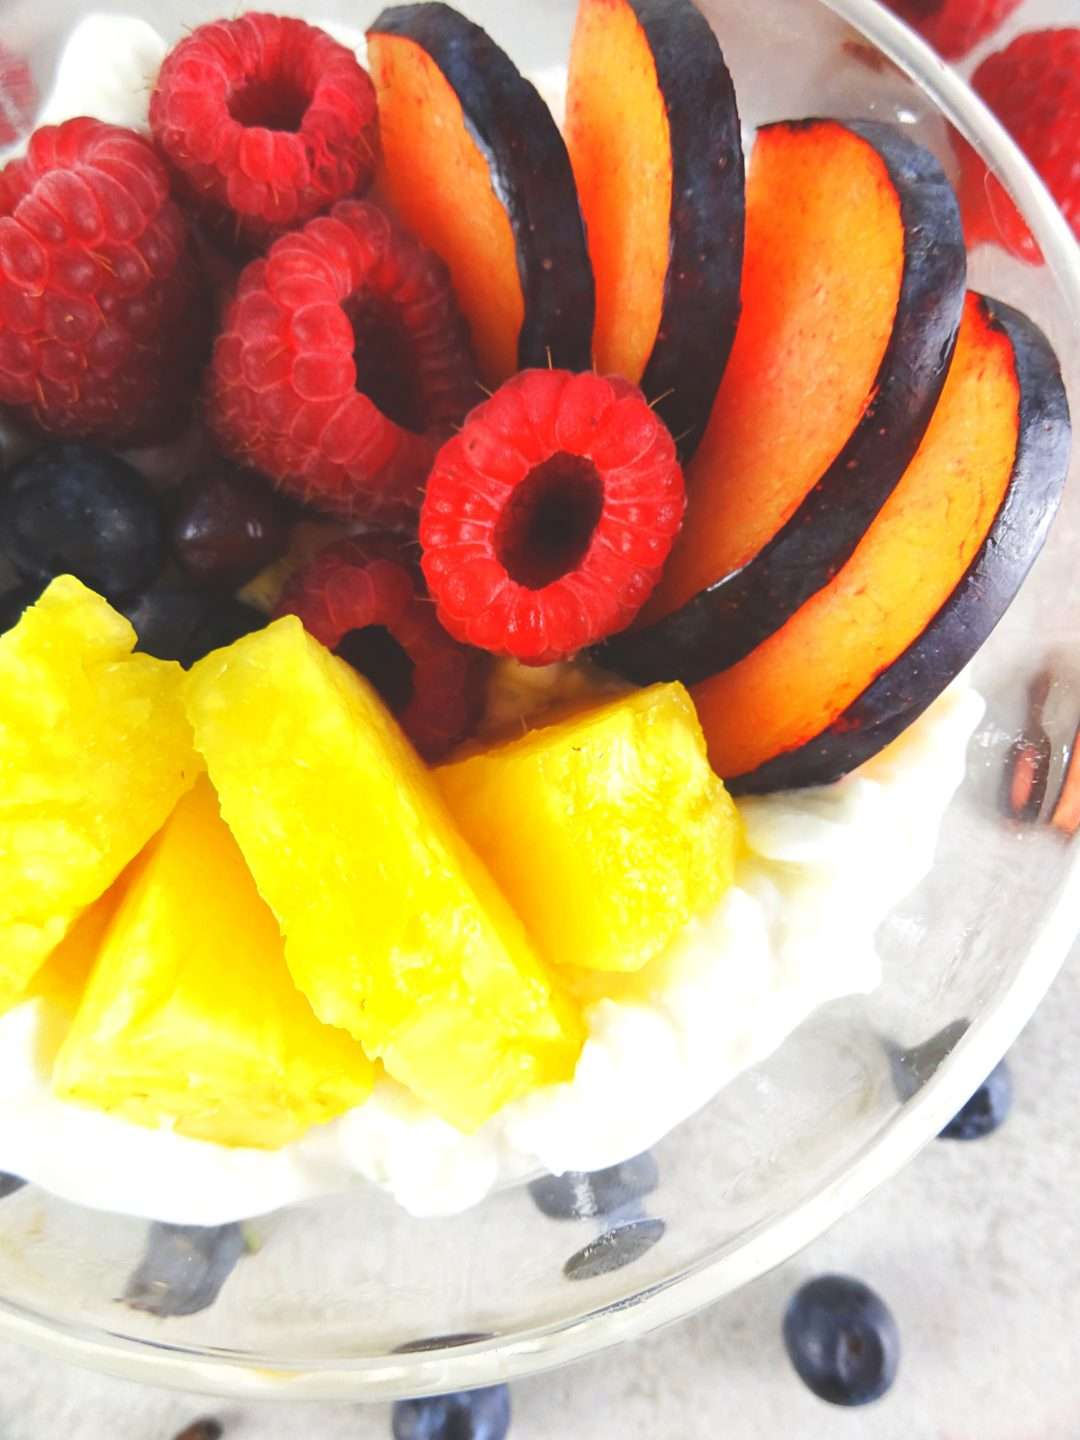 Cottage Cheese & Fruit Breakfast Bowl by The Cheerful Kitchen